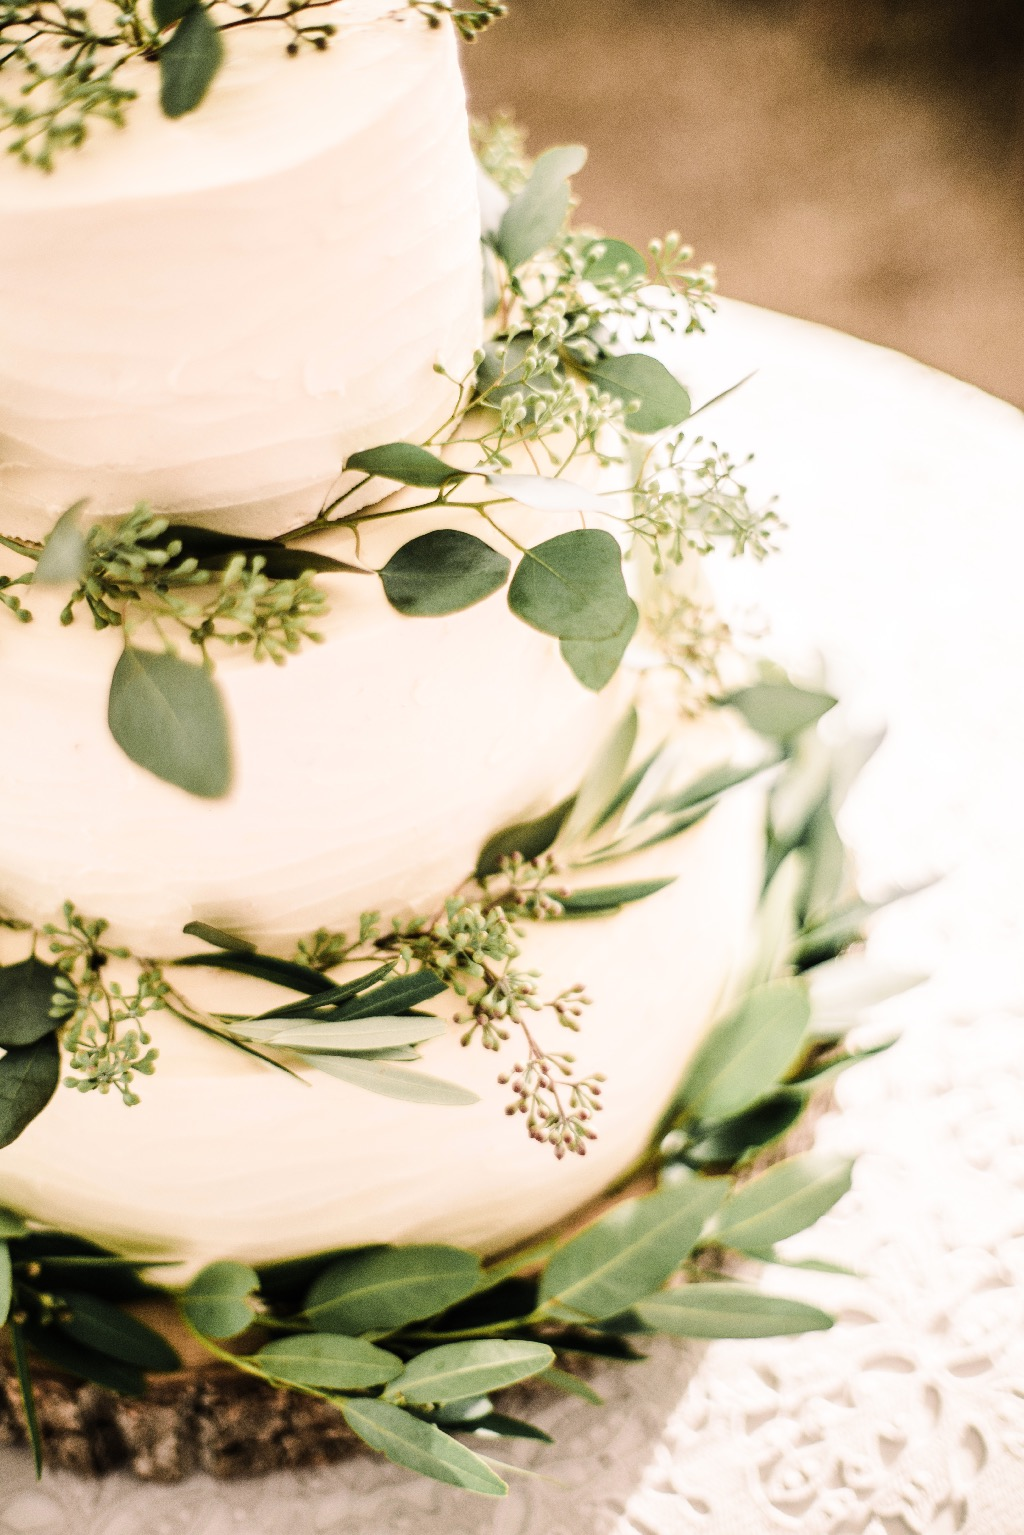 MD_MendocinoWedding_ScottAndrewStudio_2_Details-107.jpg